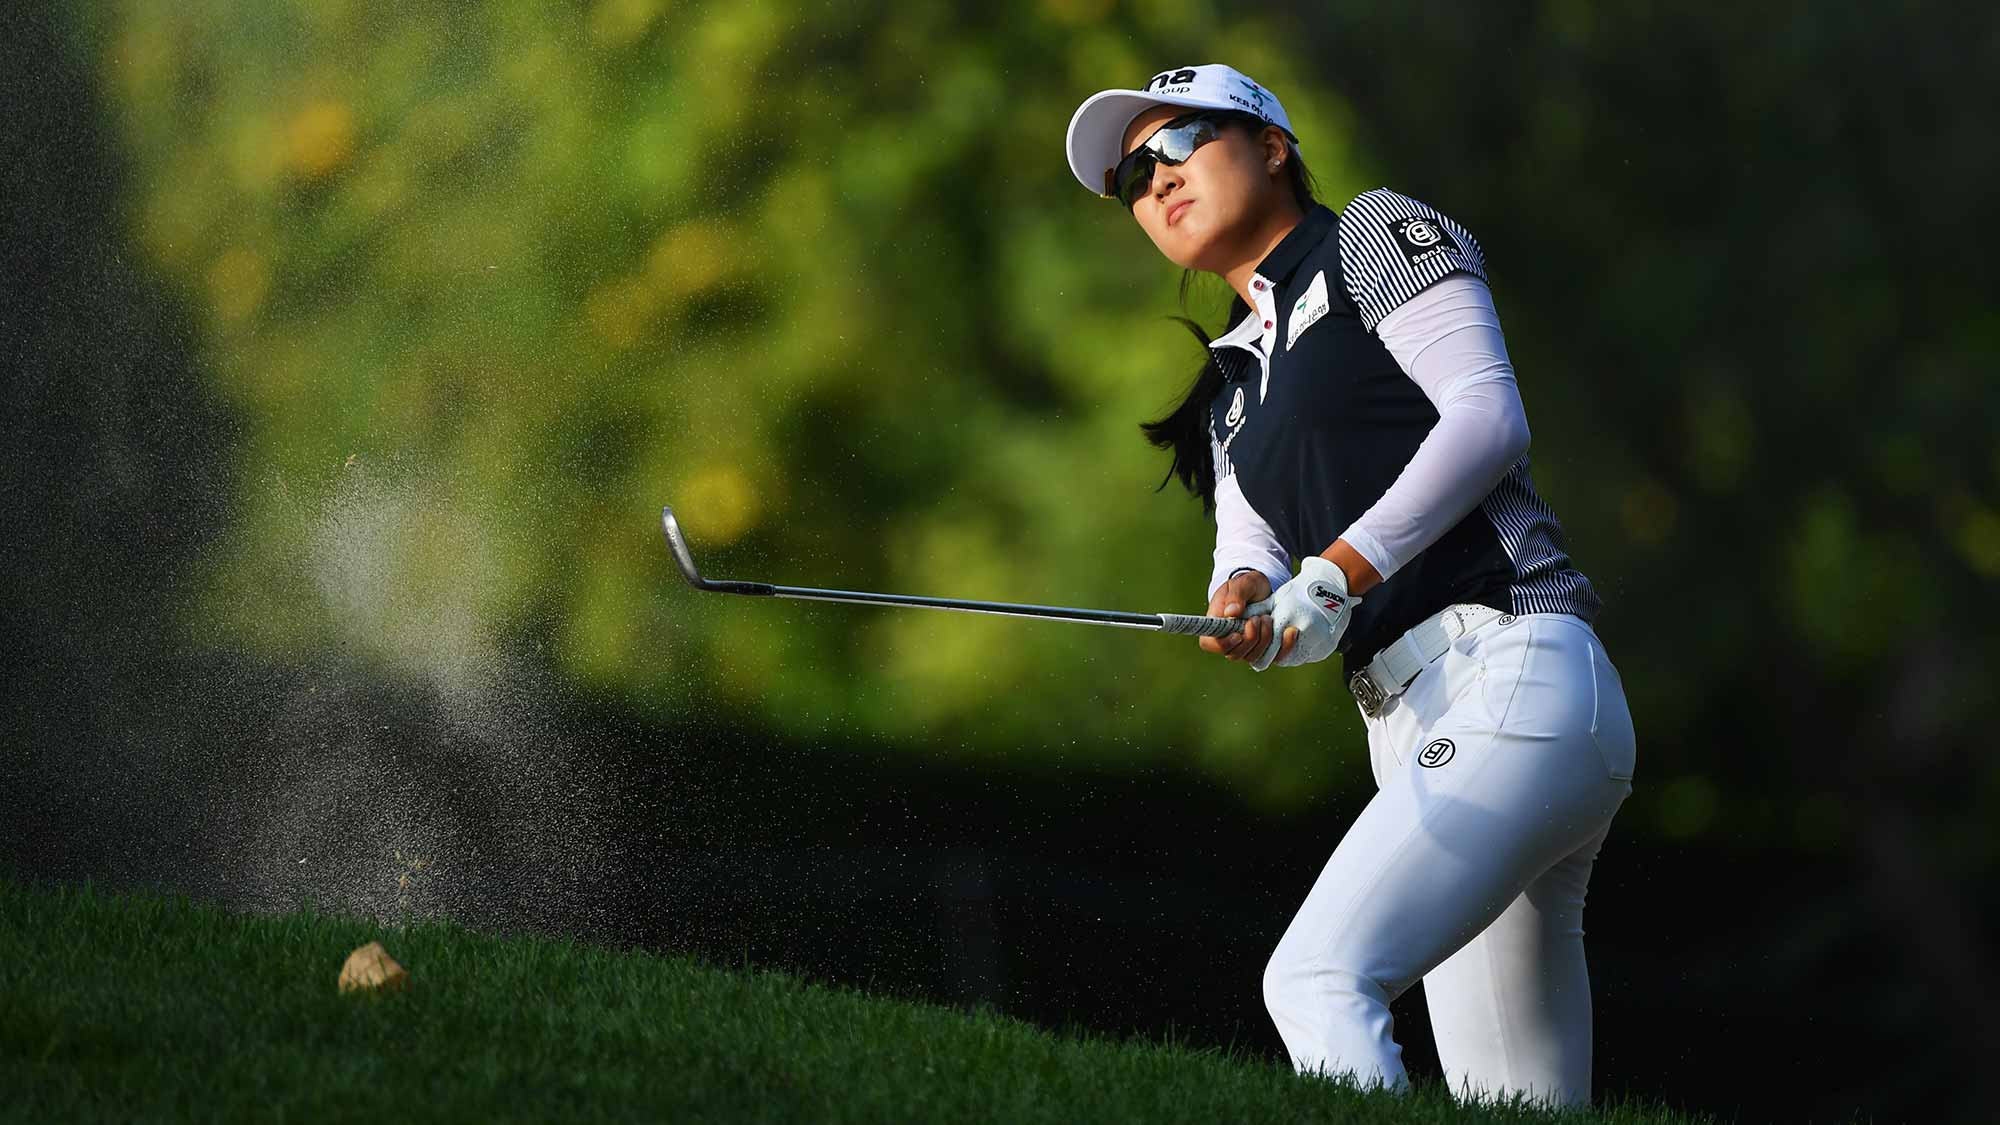 Minjee Lee of Australia plays from a bunker during day one of the Evian Championship at Evian Resort Golf Club on September 13, 2018 in Evian-les-Bains, France